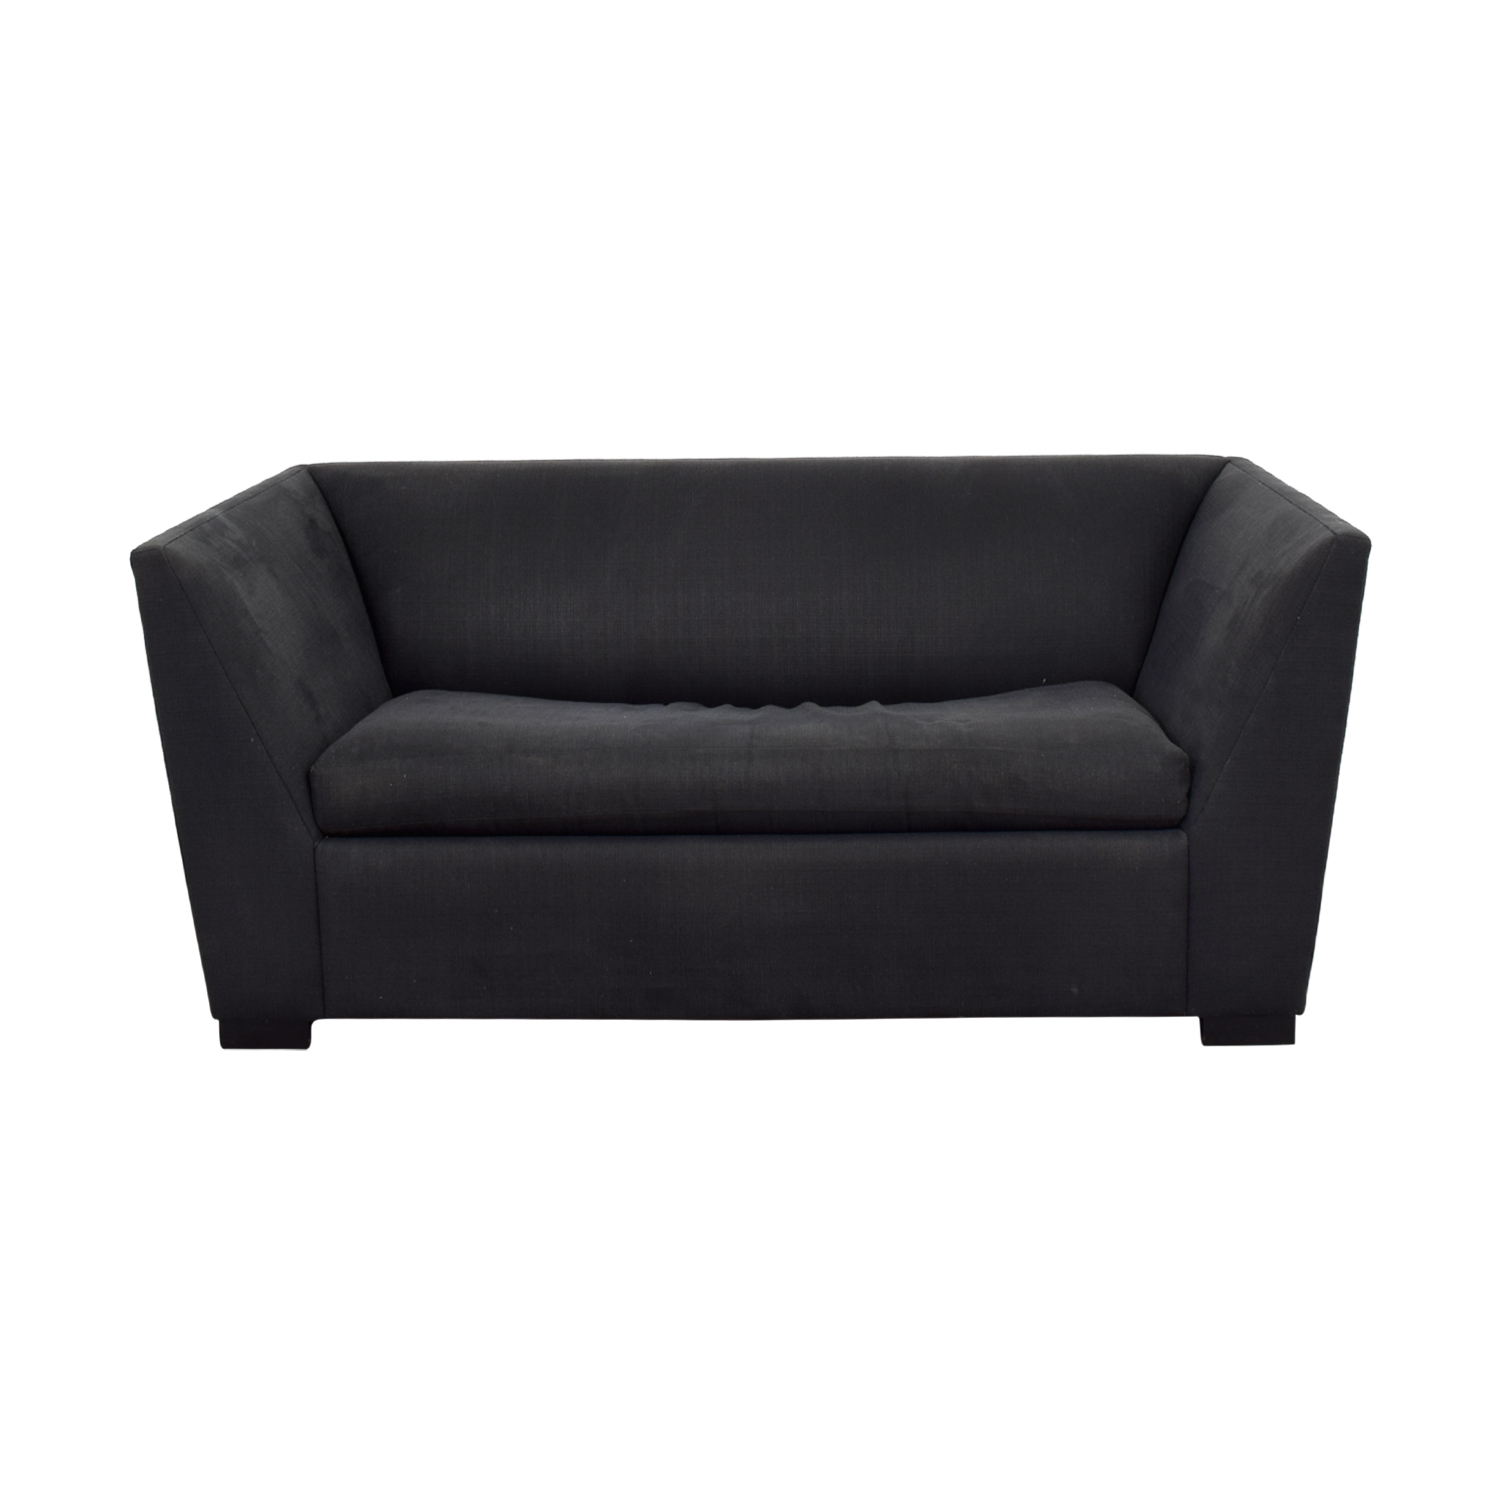 Good Shop CB2 Julius Black Twin Sleeper Sofa CB2 Loveseats